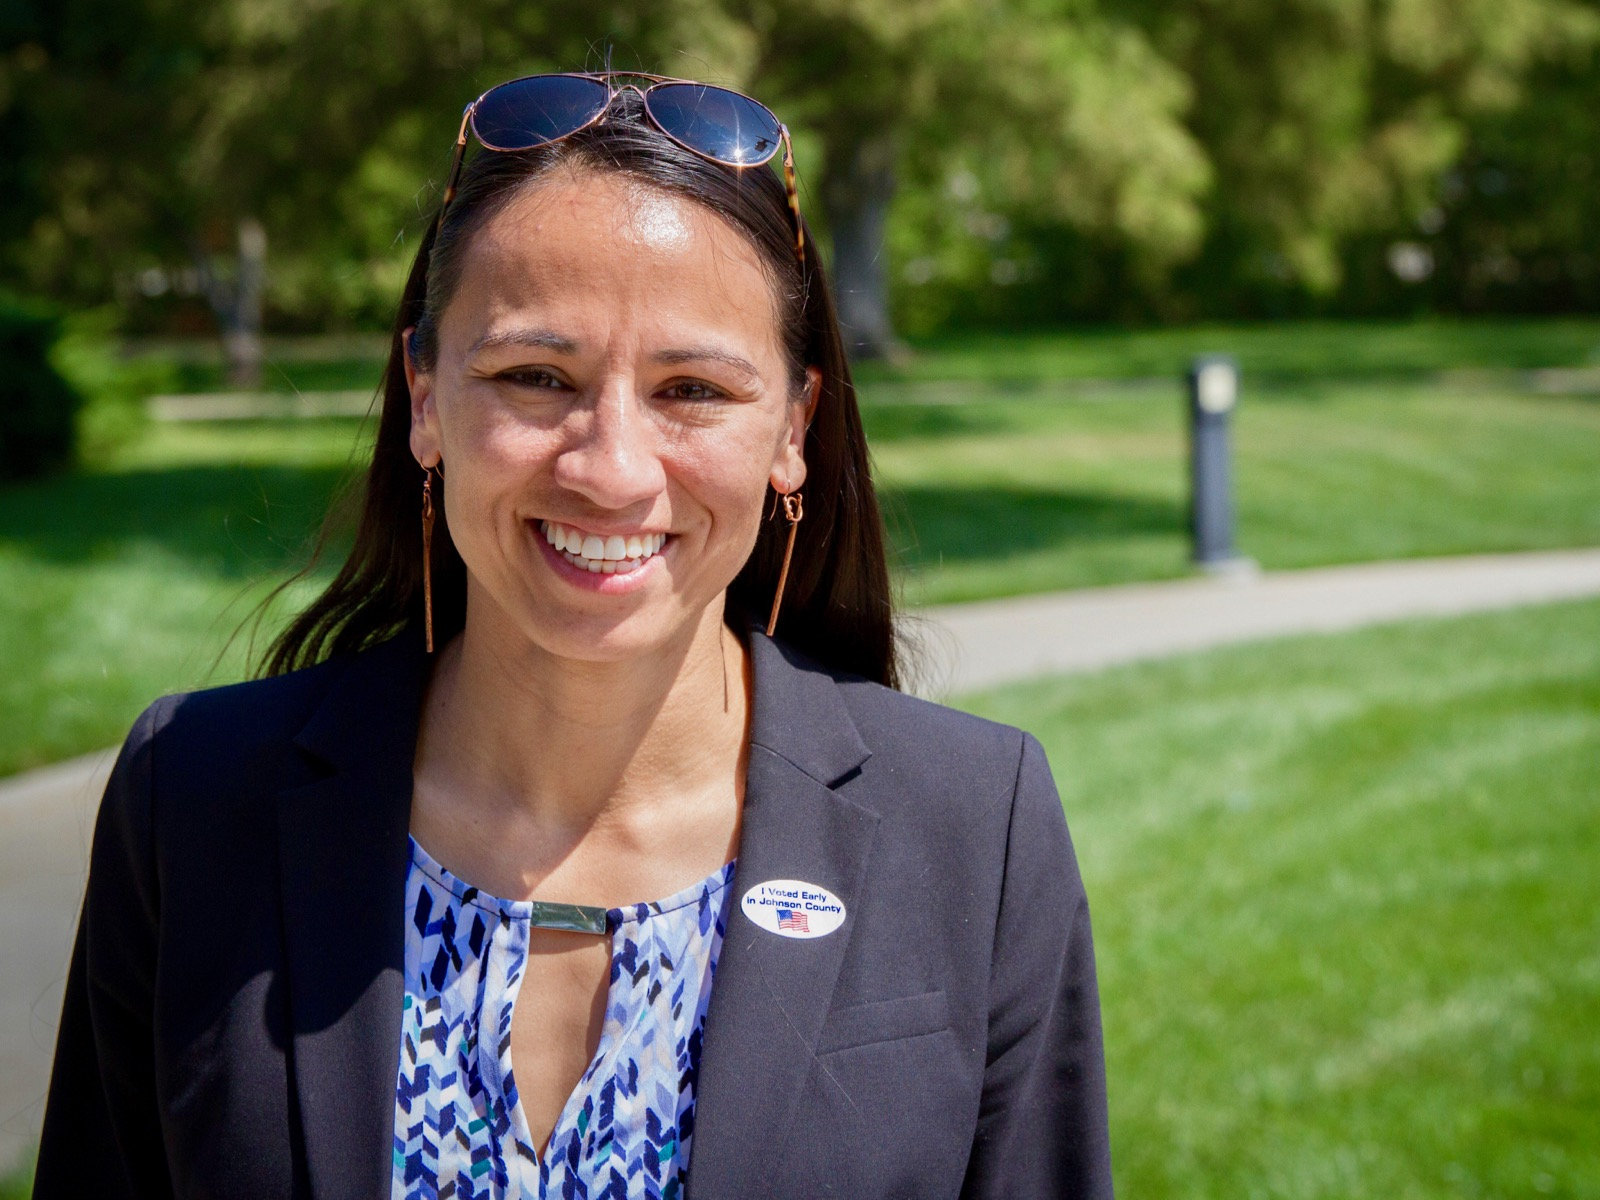 Another Native woman advances in historic year for Native candidates